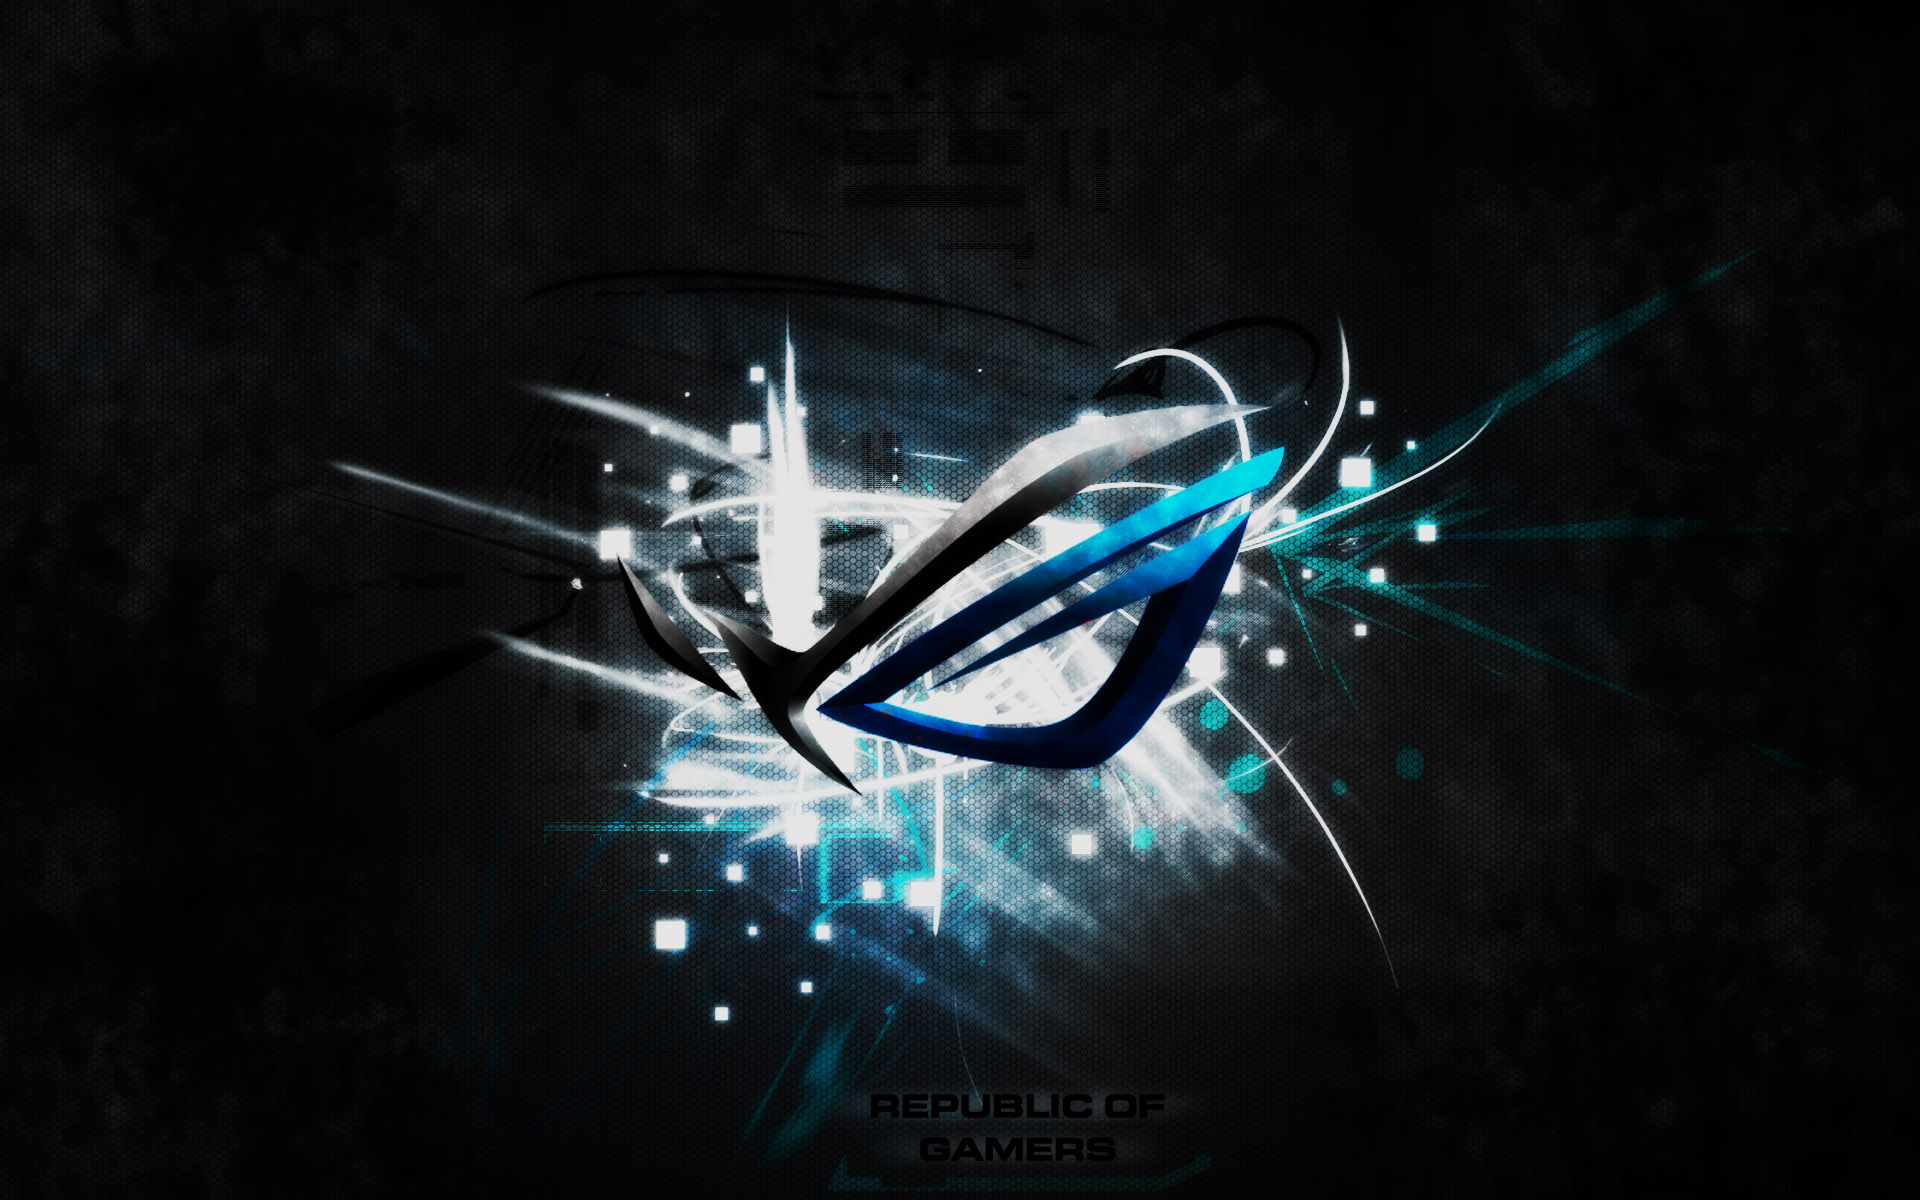 Pics photos rog blue background republic of gamers asus gamer asus - Rog Wallpaper Contest Jan 2012 Win A Copy Of Battlefield 3 Archive Asus Republic Of Gamers Rog The Choice Of Champions Overclocking Pc Gaming